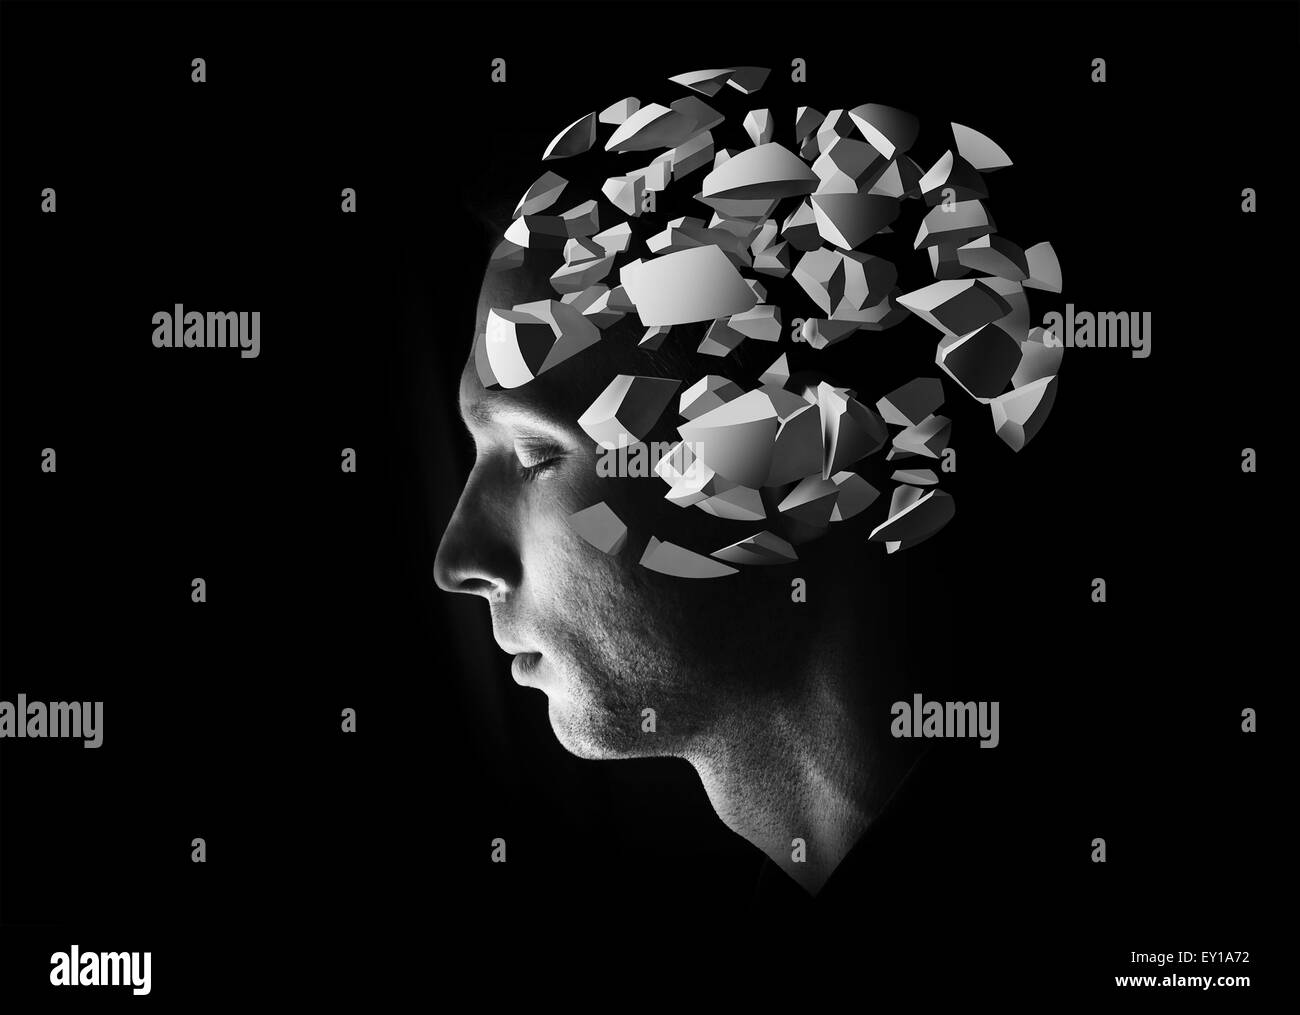 Male head profile with 3d explosion brain fragments on black background - Stock Image